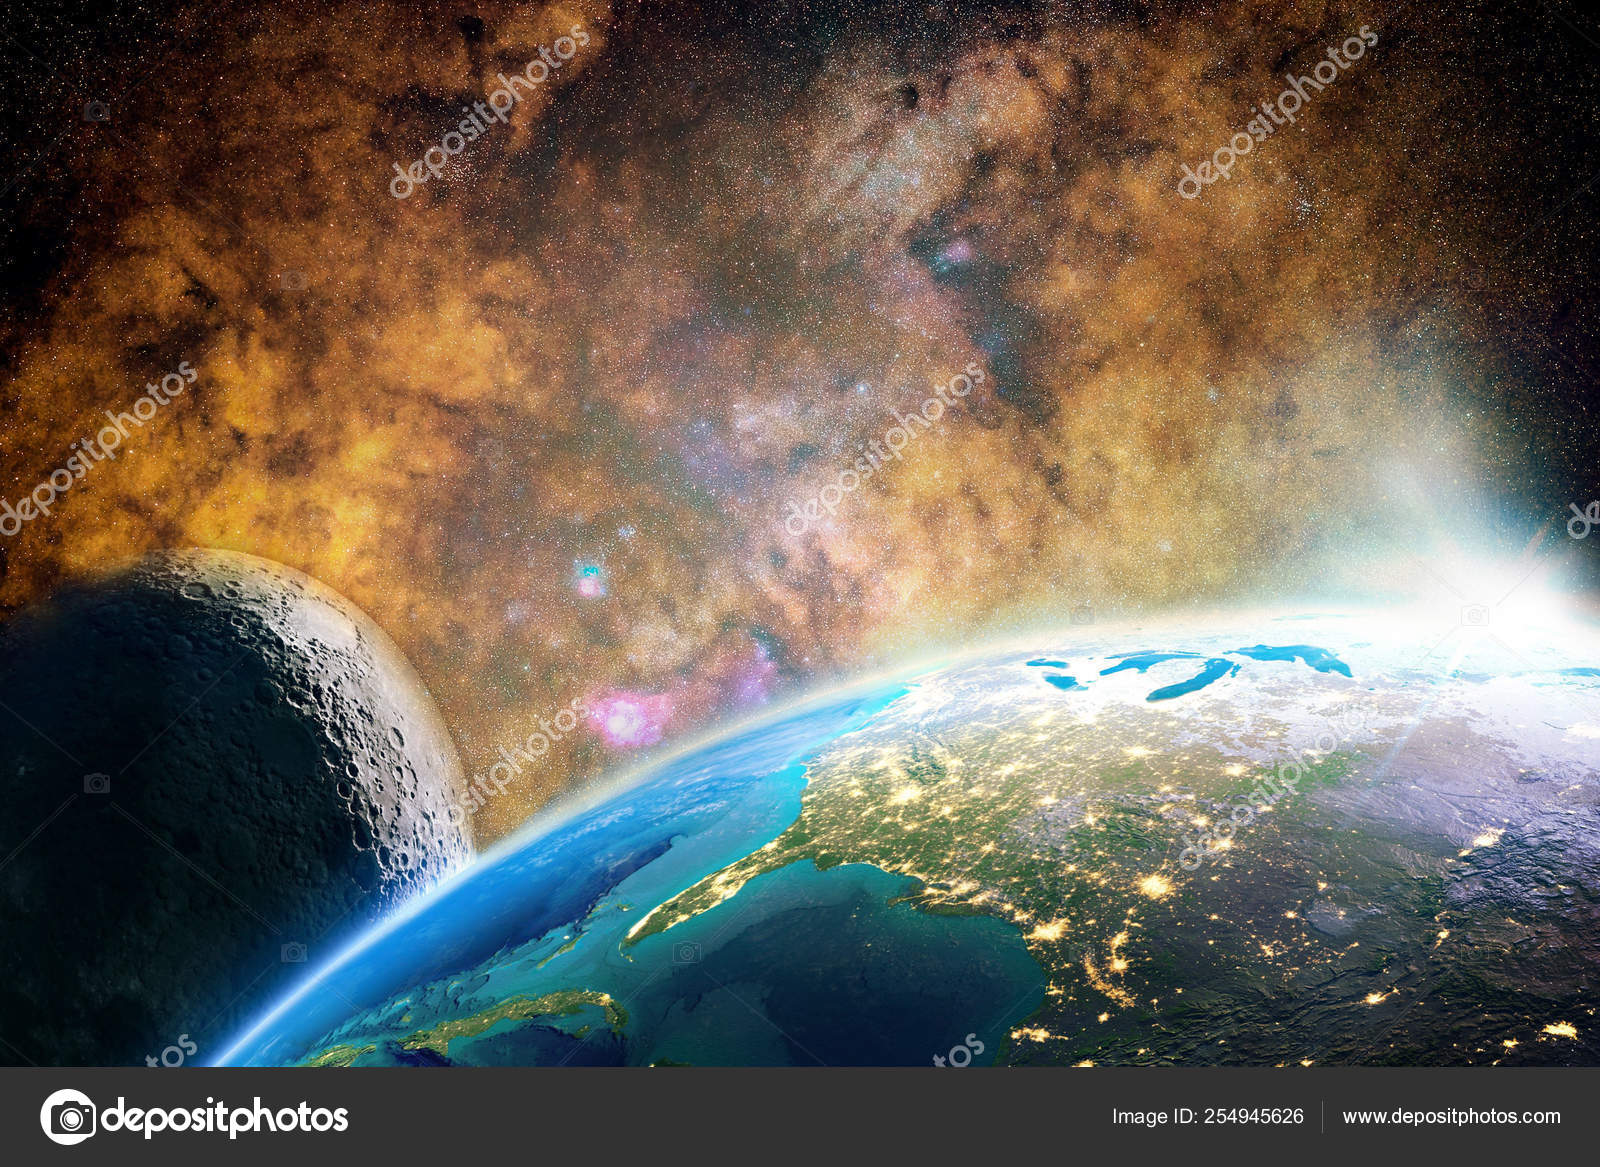 Artistic Abstract Planet With It S Moon In A Colorful Galaxy Background Stock Photo C Mo Ali 254945626